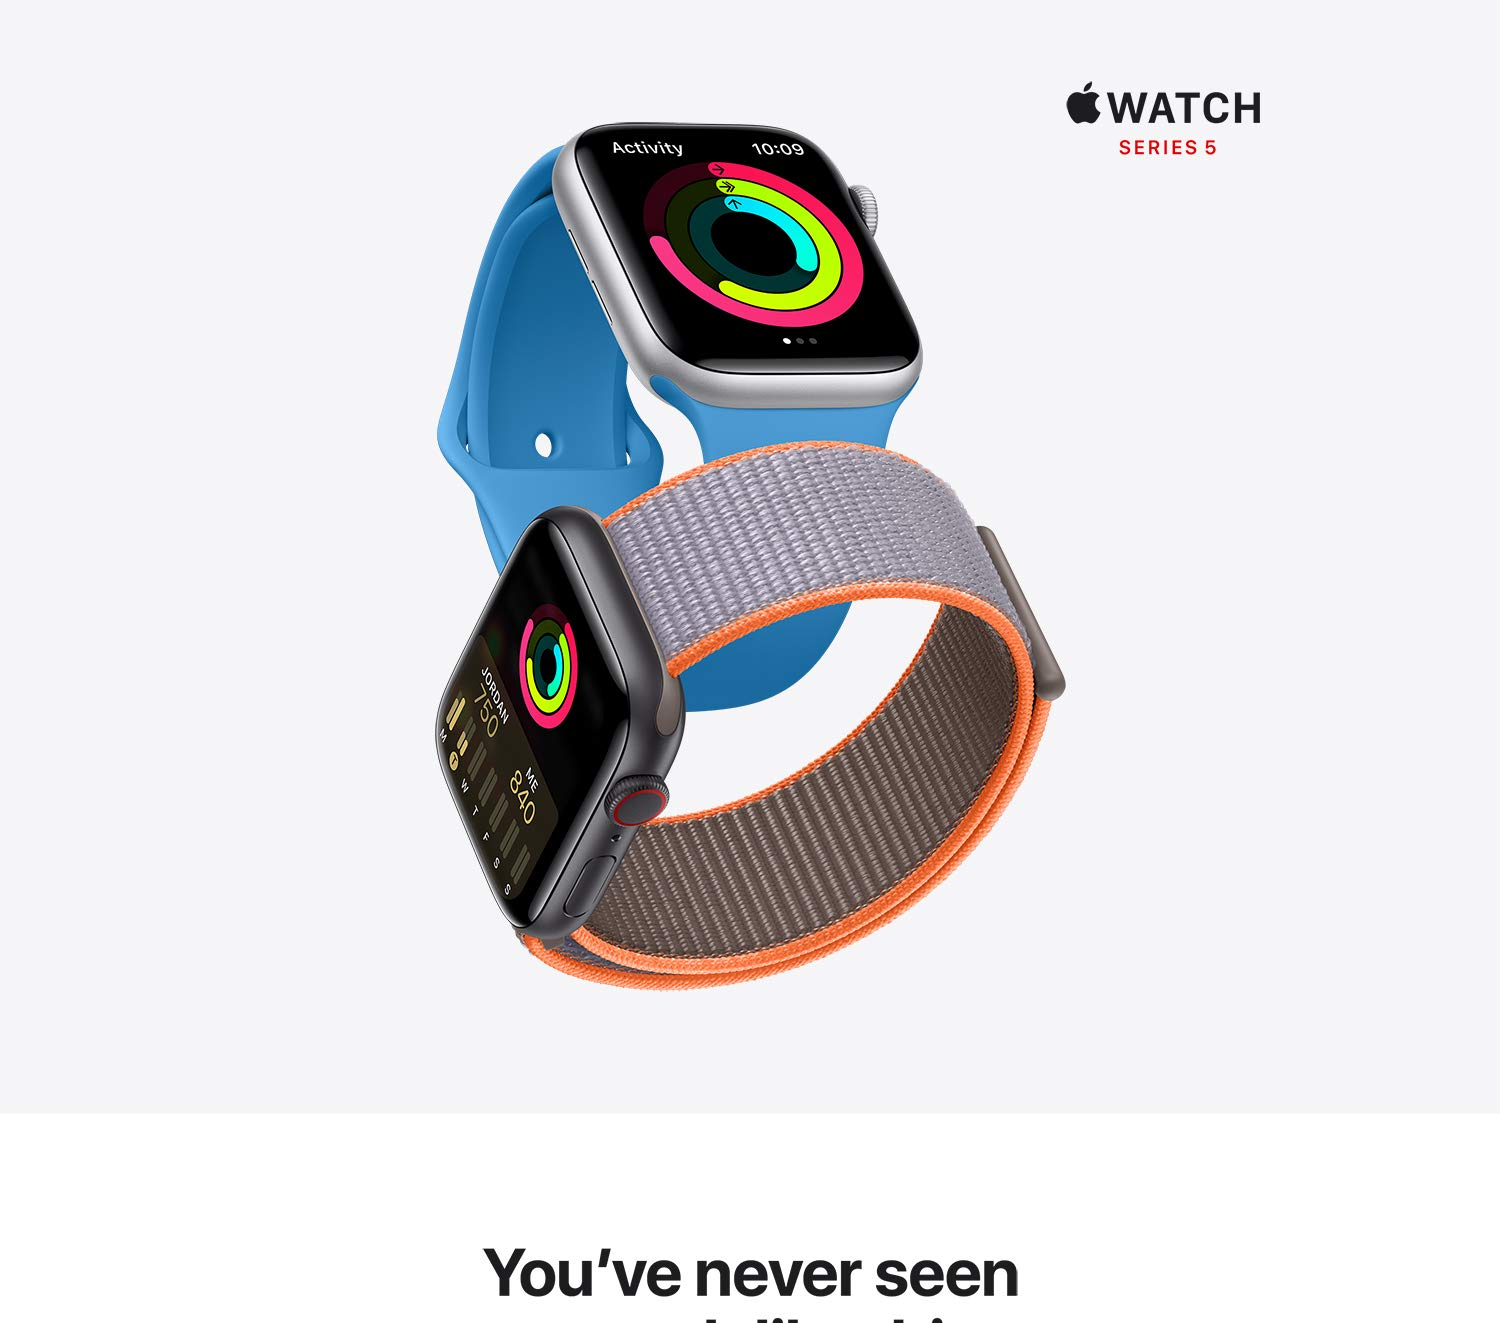 You've never seen a watch like this. This watch has a display that never sleeps. With the Always-On Retina display, you always see the time and your watch face.